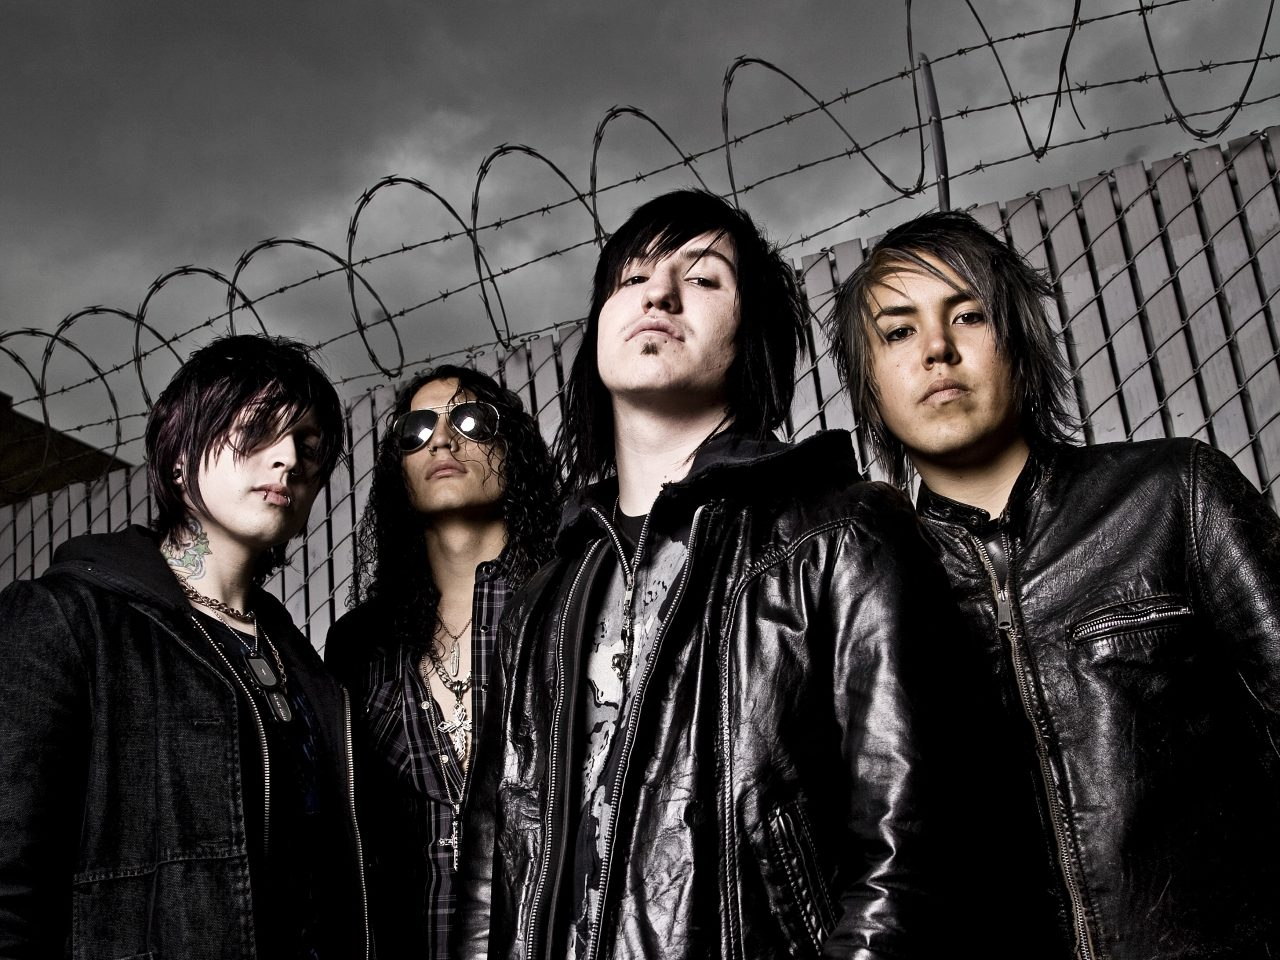 Falling In Reverse Wallpaper Altwall Скачать Escape The Fate Wallpaper обои рабочего